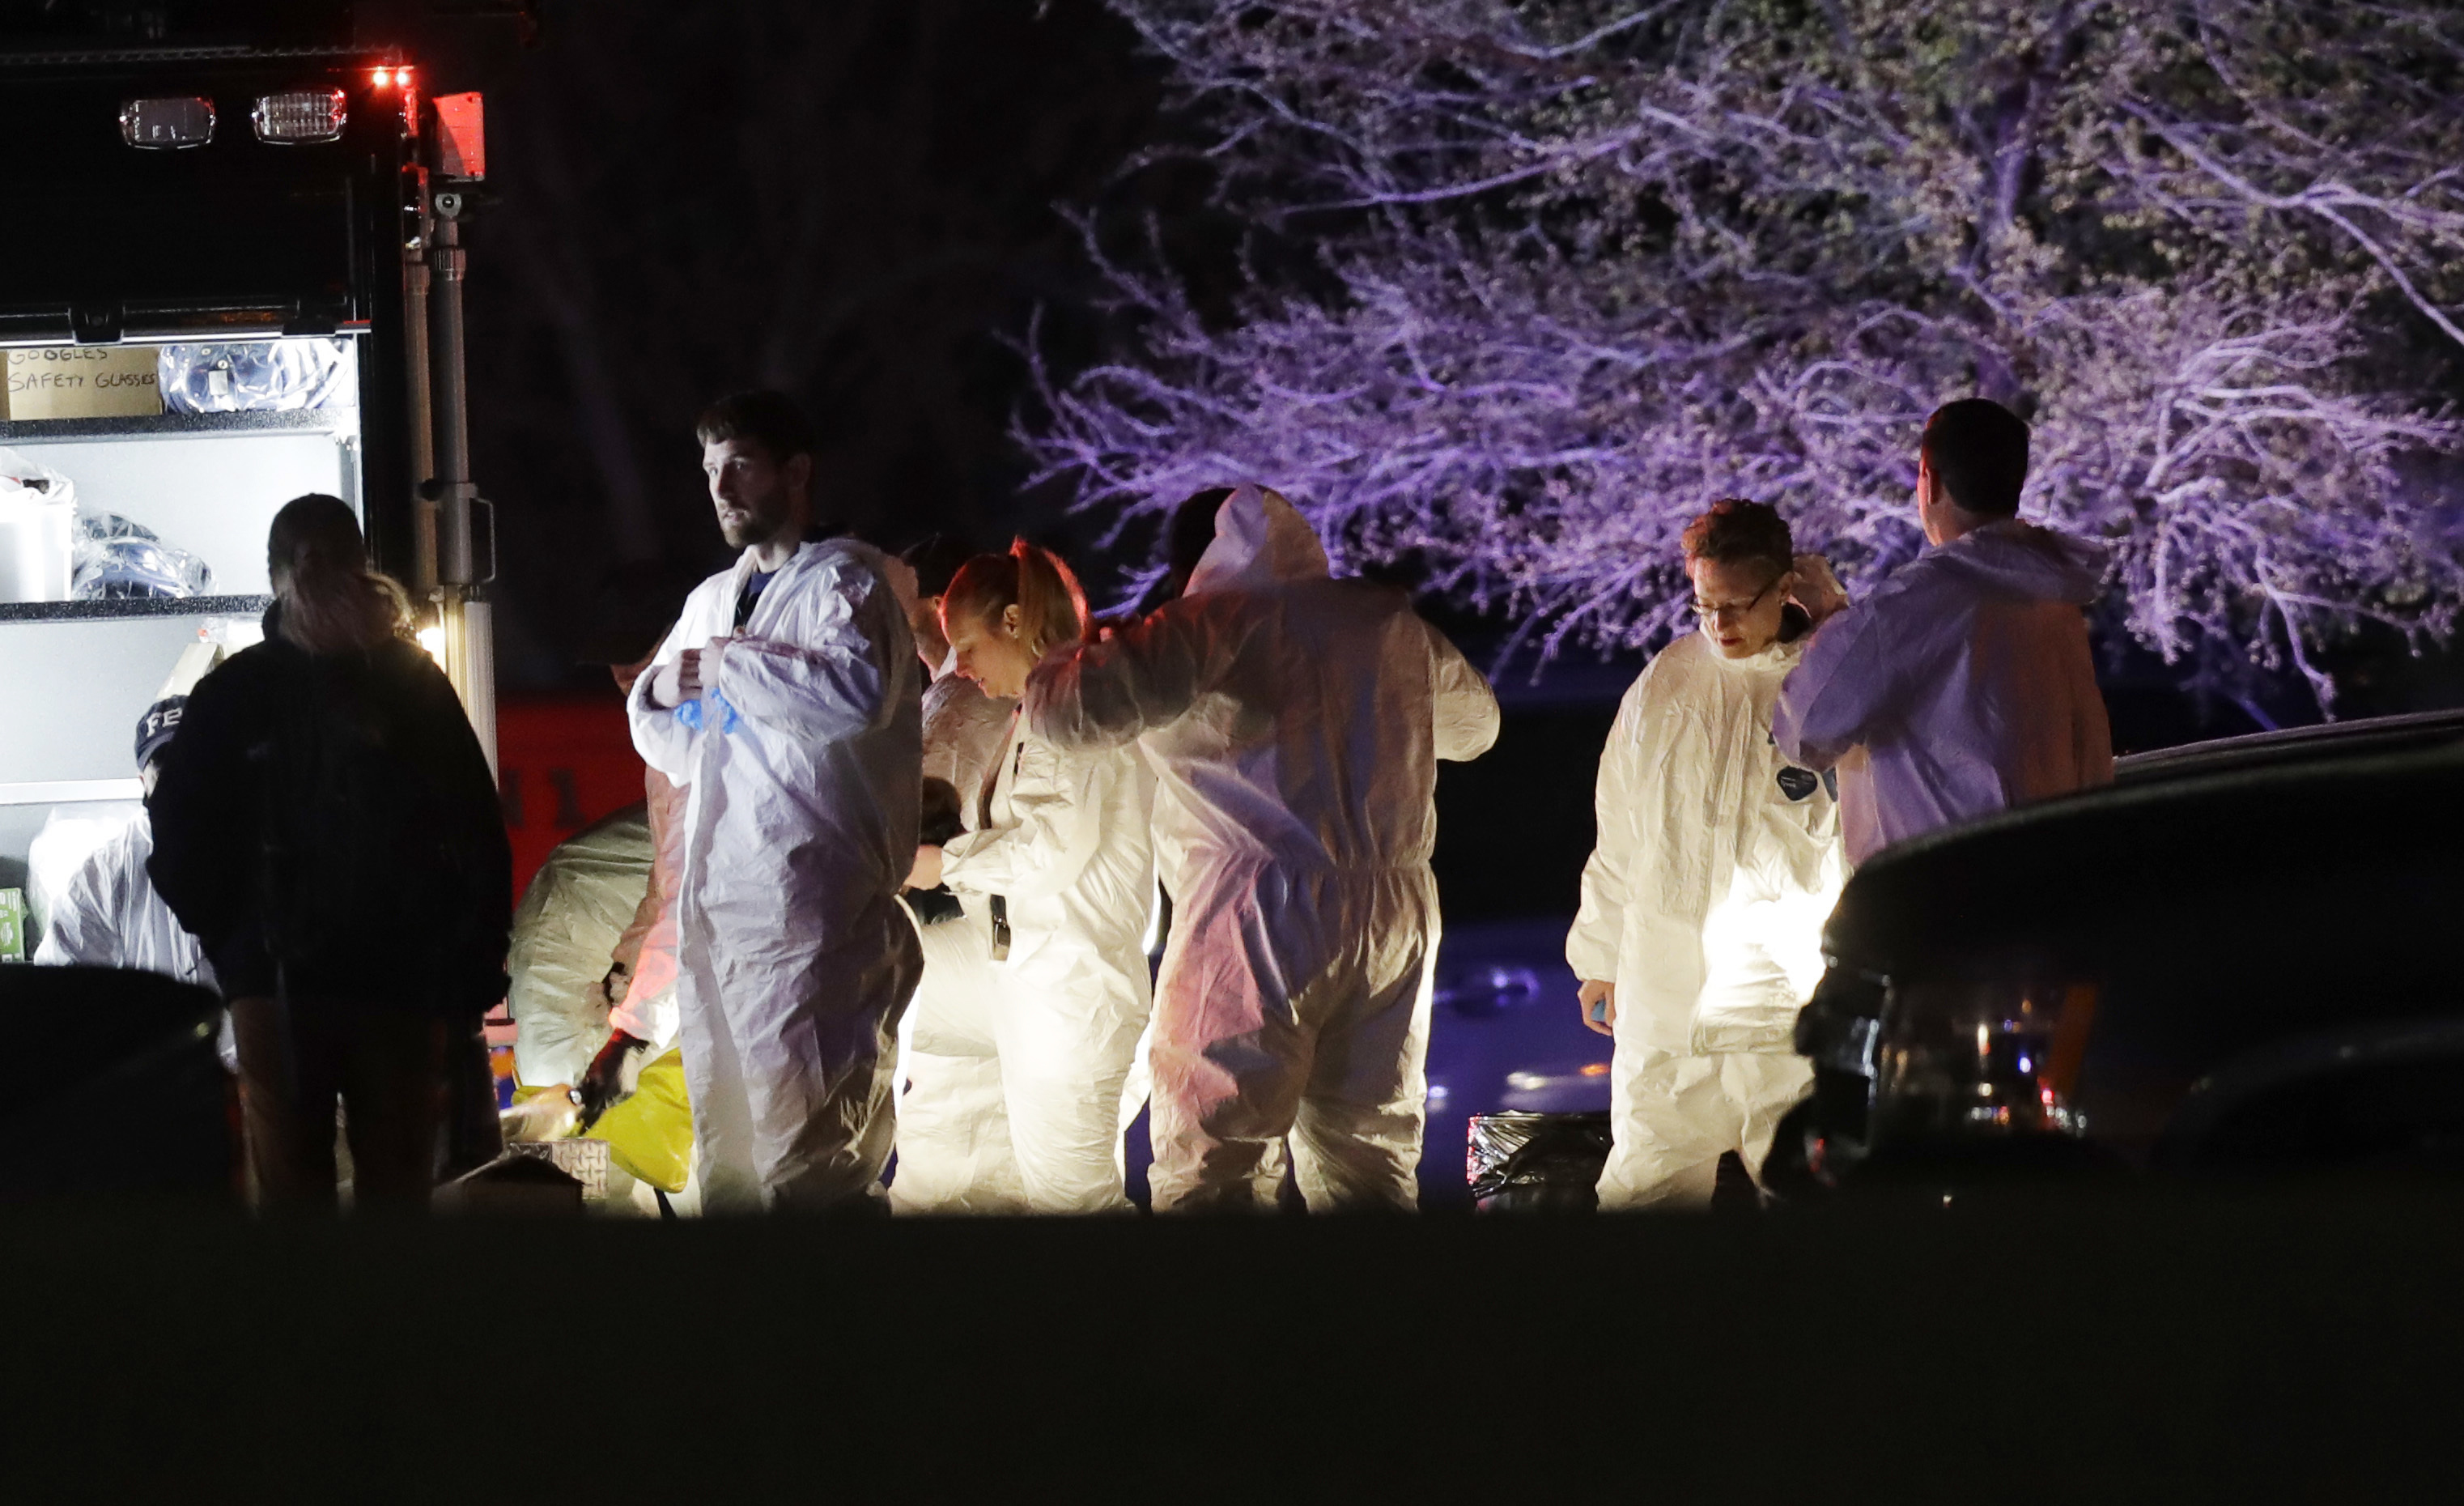 Austin bombing suspect blows himself up as SWAT moves in ...